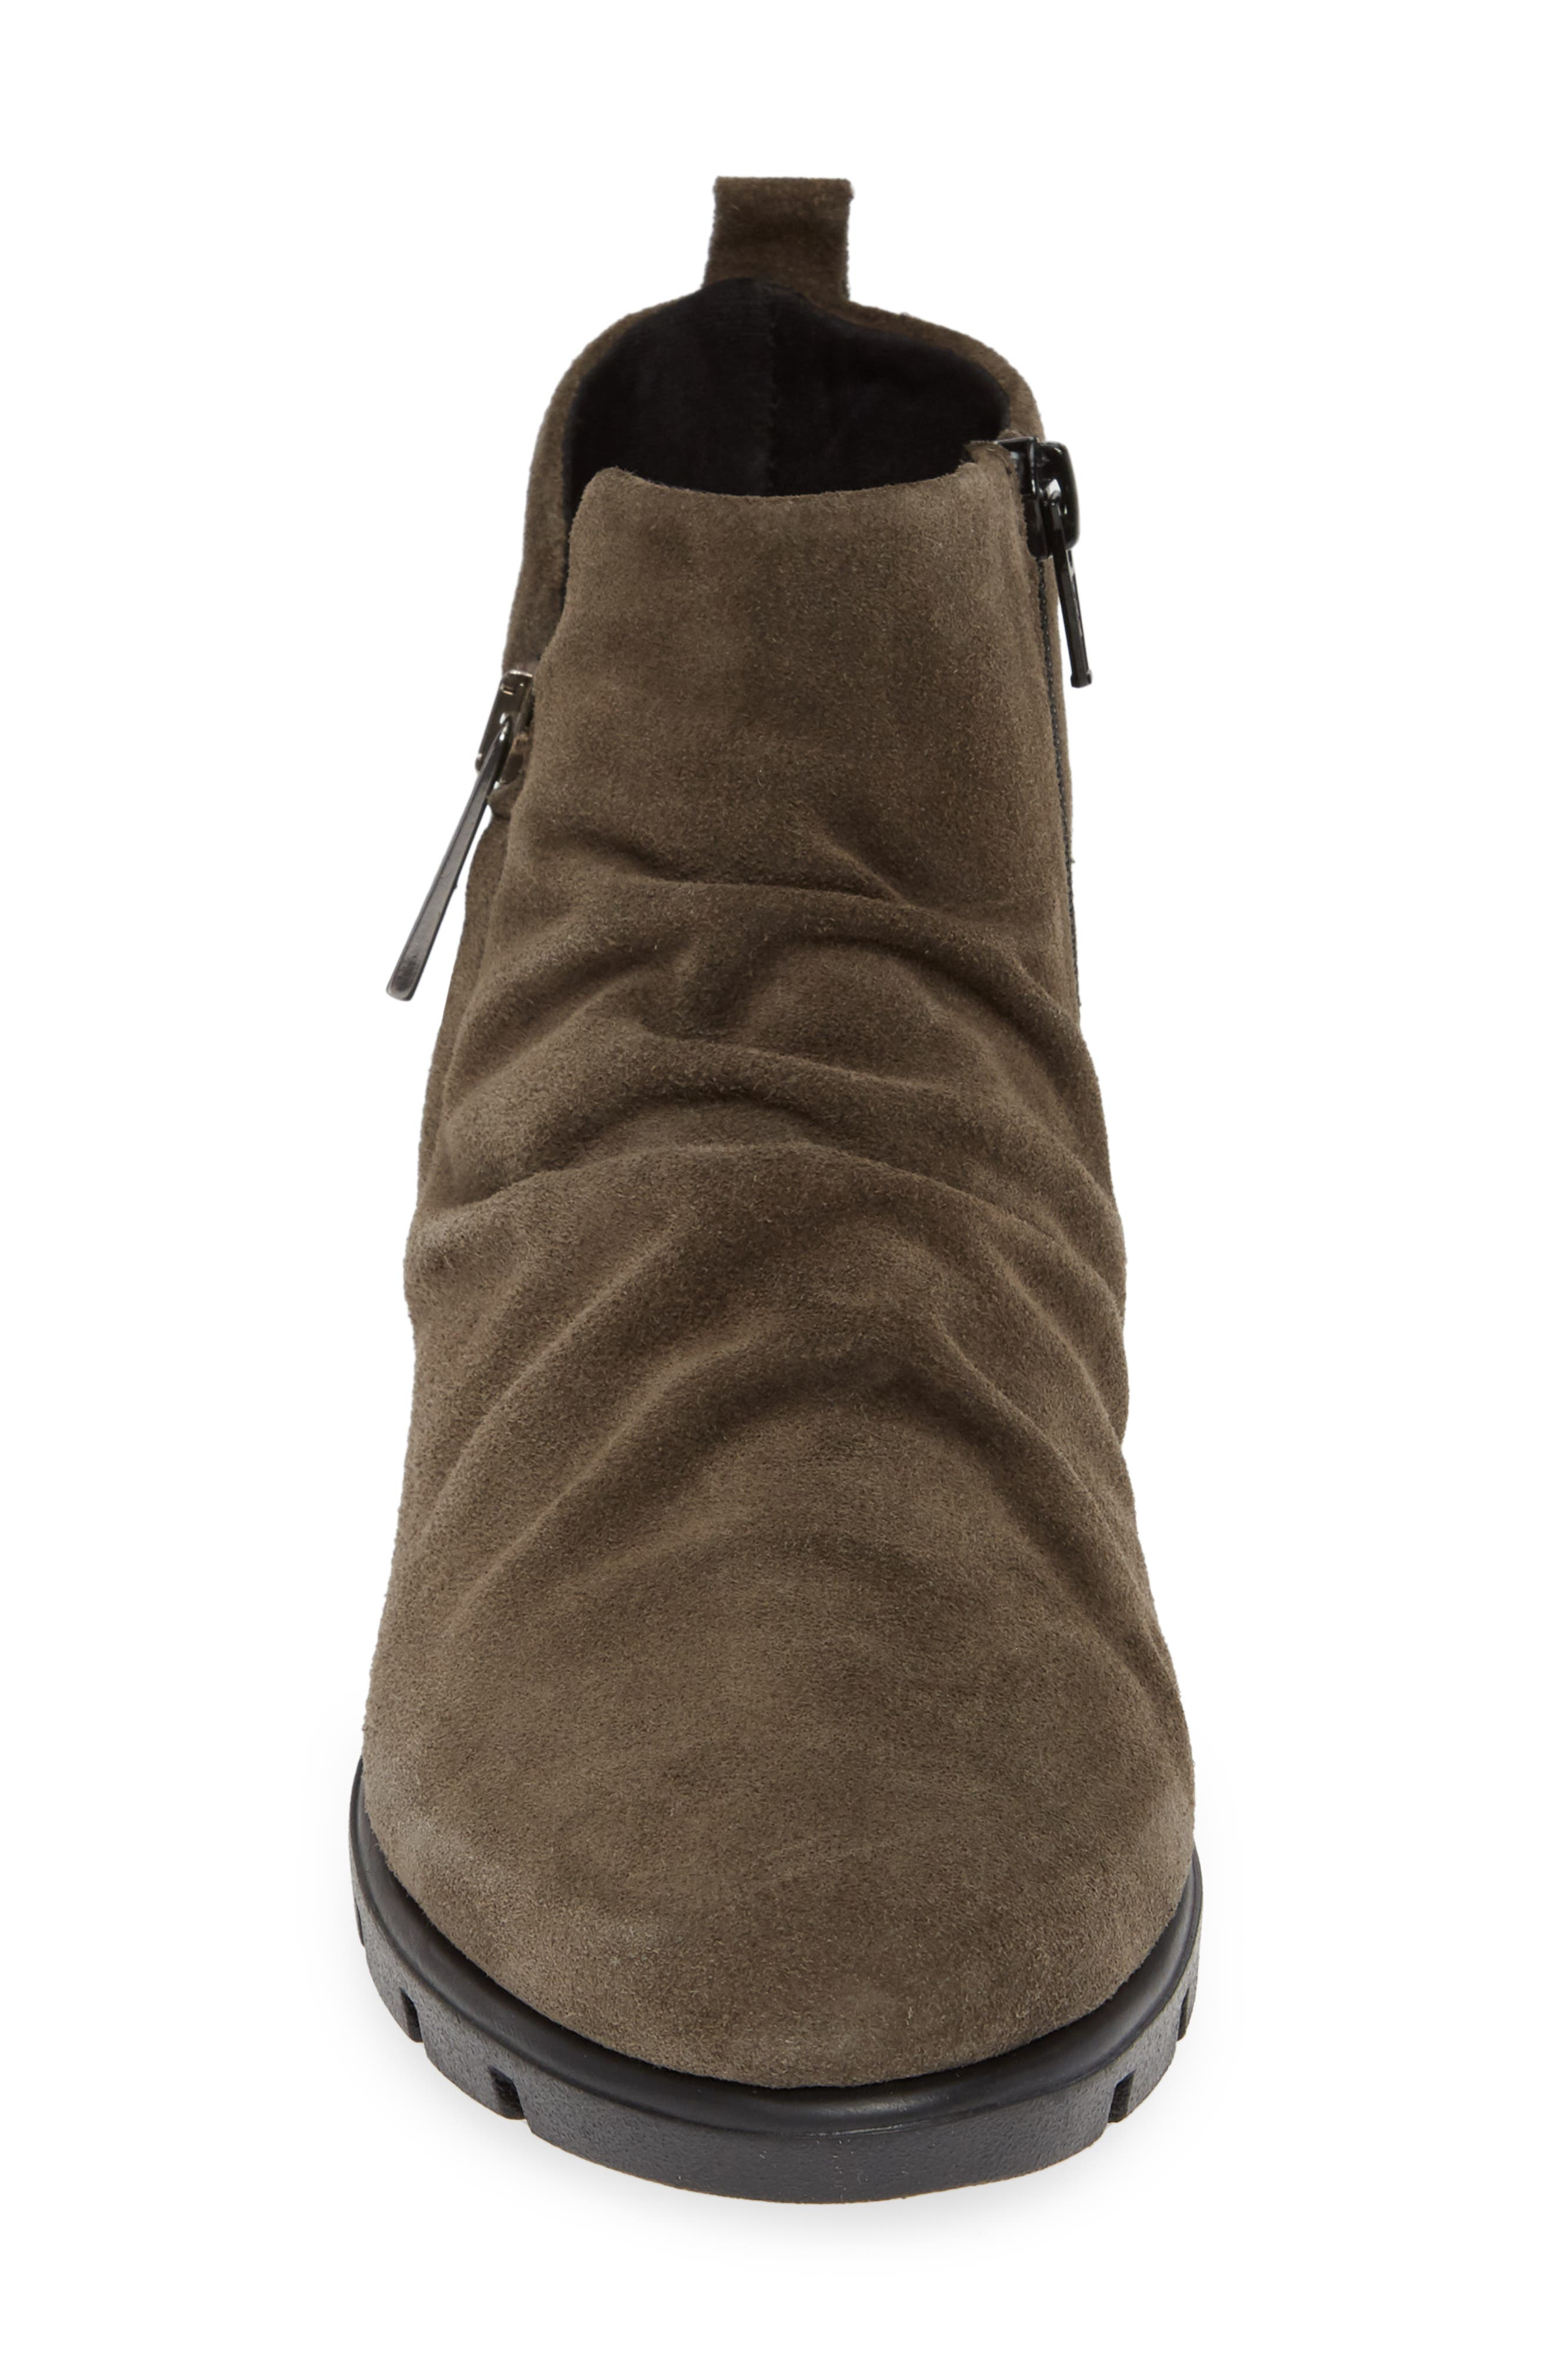 THE FLEXX, Slingshot Ankle Bootie, Alternate thumbnail 4, color, BROWN SUEDE